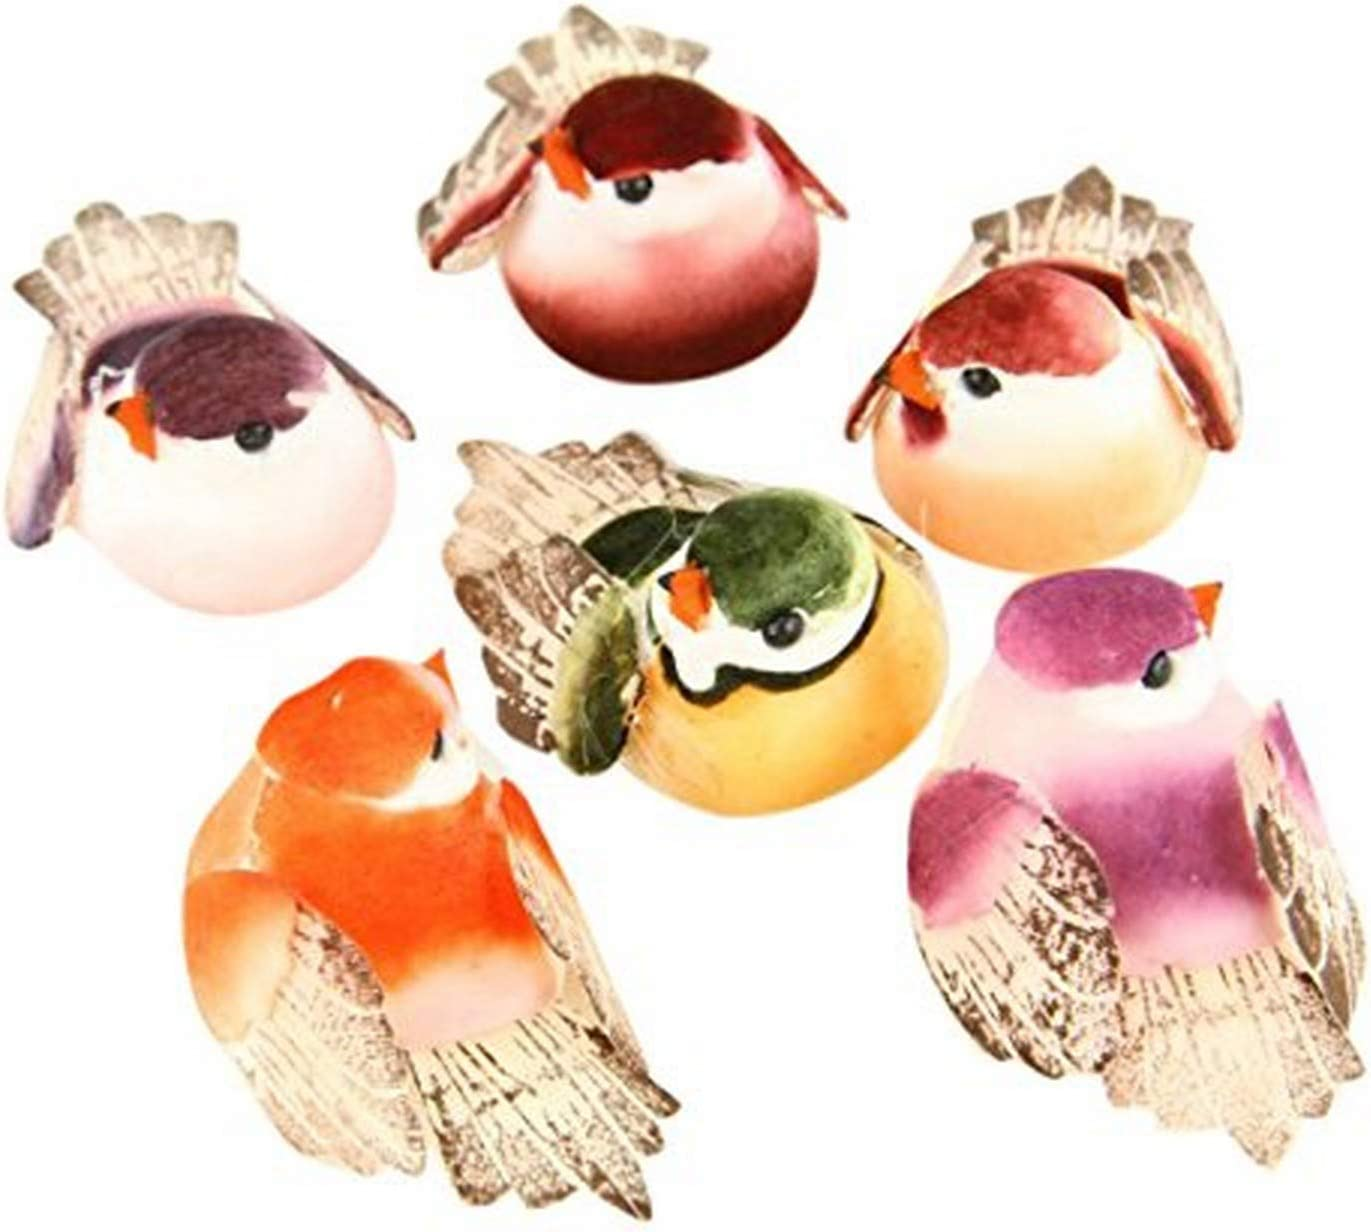 "Shinoda Design Center 0165500205 6 Piece Mushroom Bird Decor, 2"", Assorted"